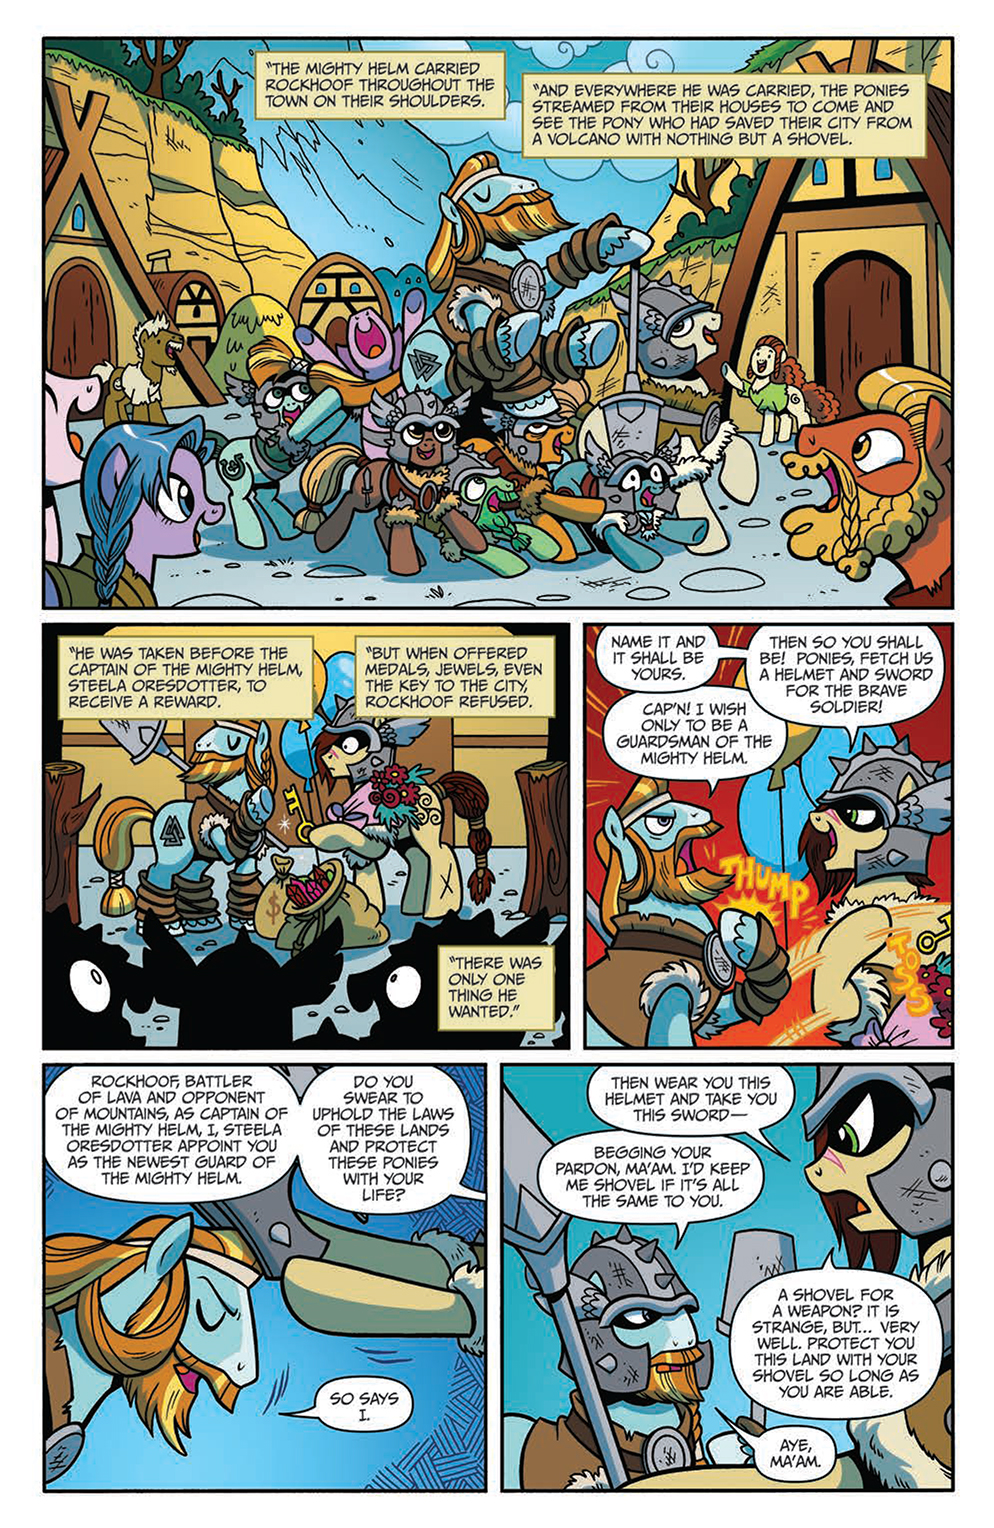 EXCLUSIVE PREVIEW: My Little Pony: Legends of Magic #2 - IDW Publishing